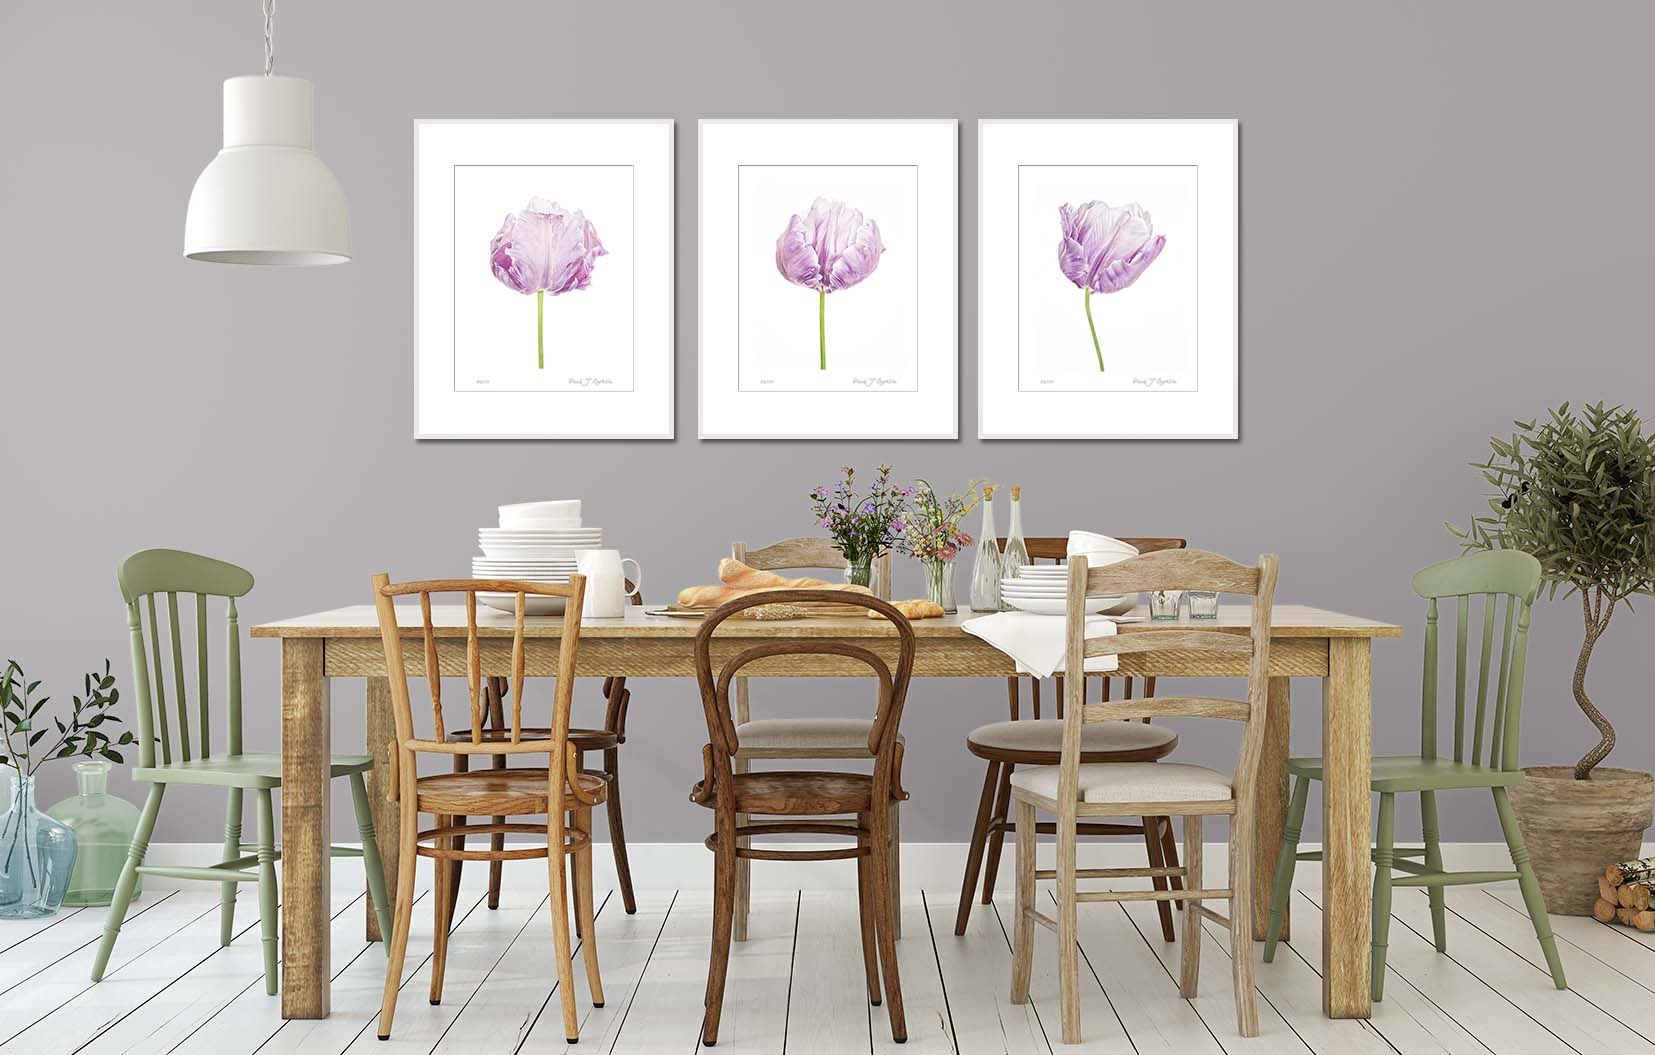 Three limited edition prints of blue parrot tulips by fine art photographer Paul Coghlin FBIPP.